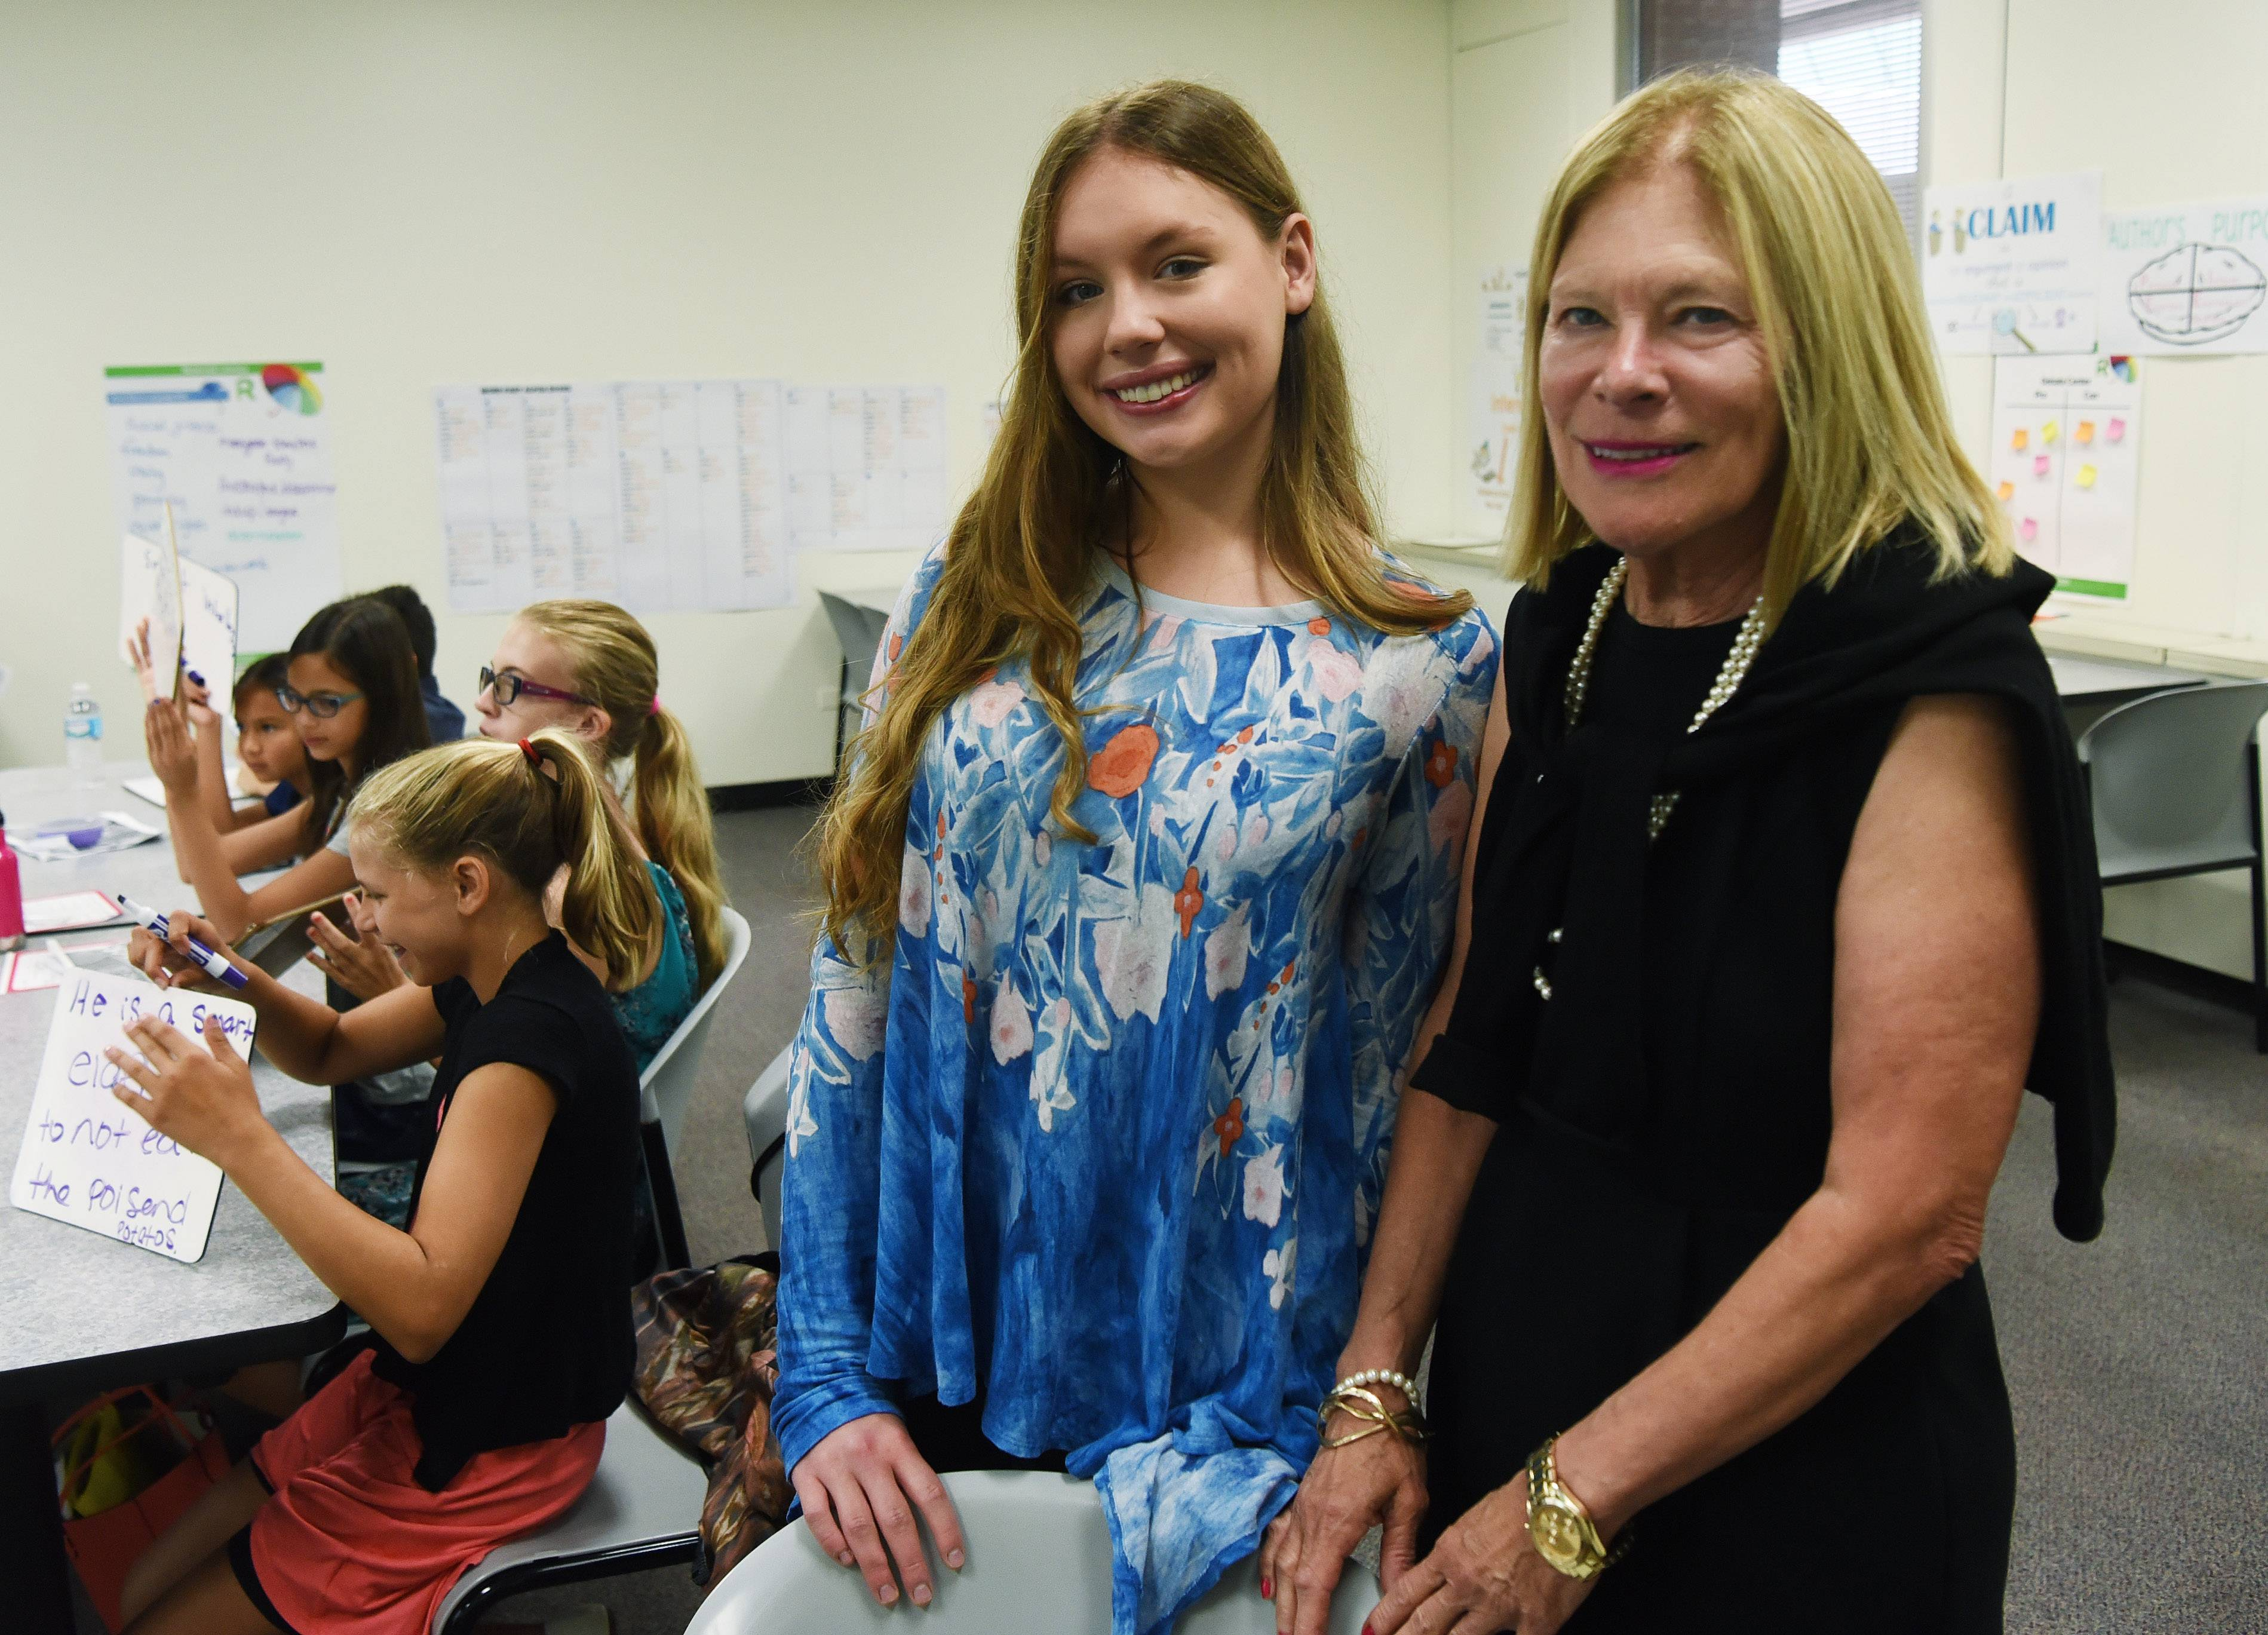 Margaret Policastro, founder and director of Roosevelt University's Schaumburg summer reading clinic, and 18-year-old volunteer and former student Karen Iverson are working together at this summer's session for area youngsters. The program is celebrating its 30th year.